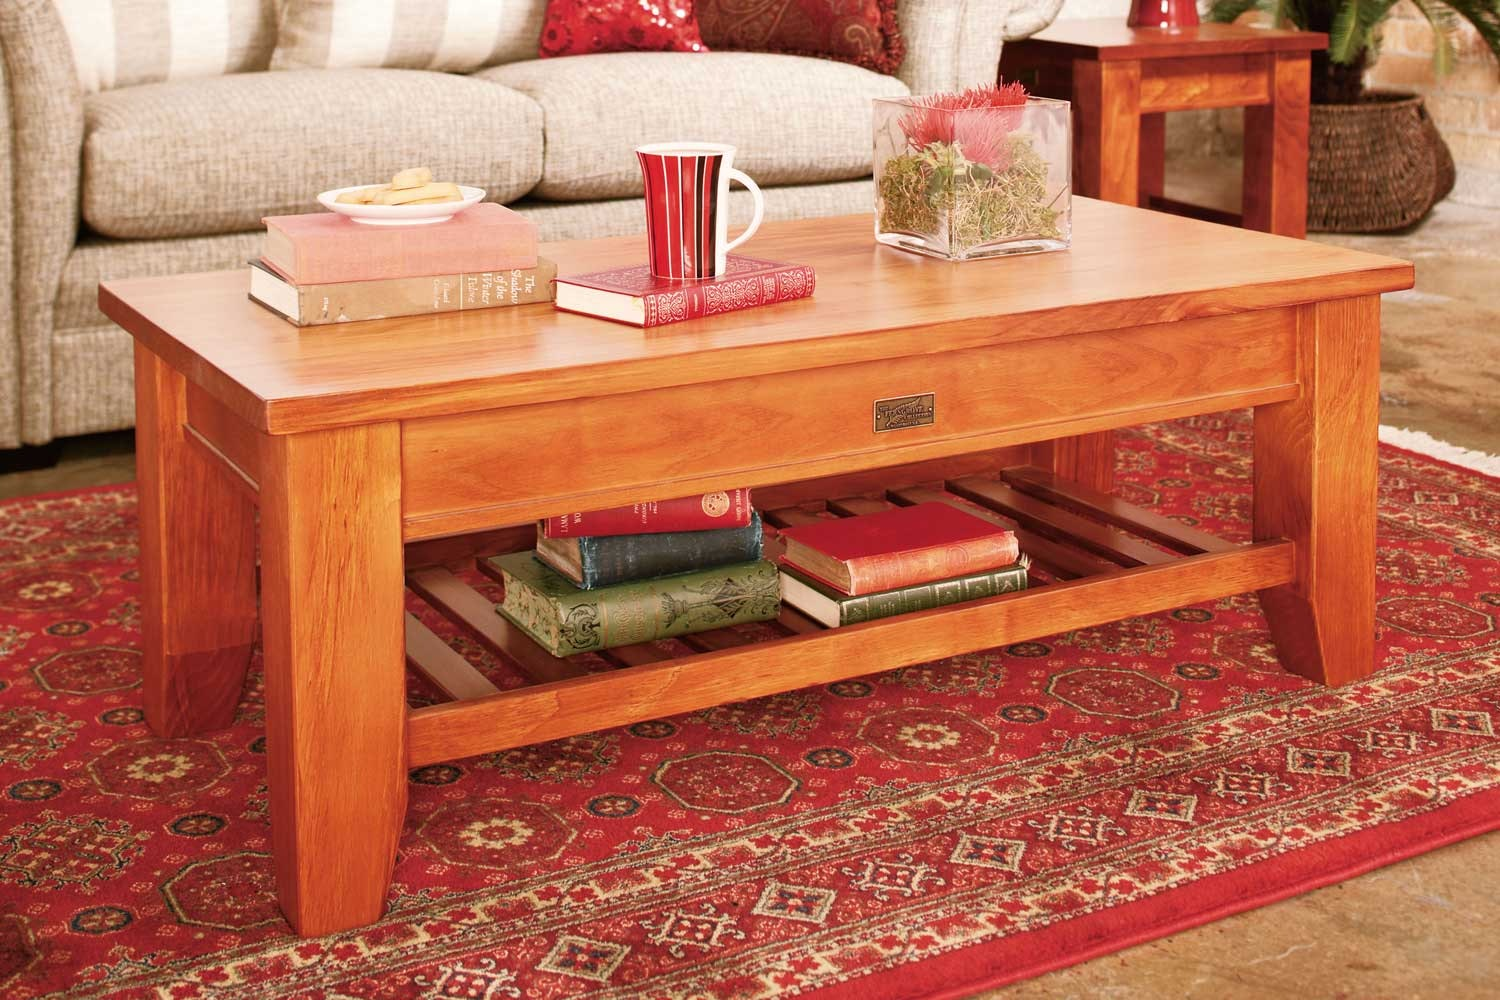 Ferngrove Coffee Table with Rack